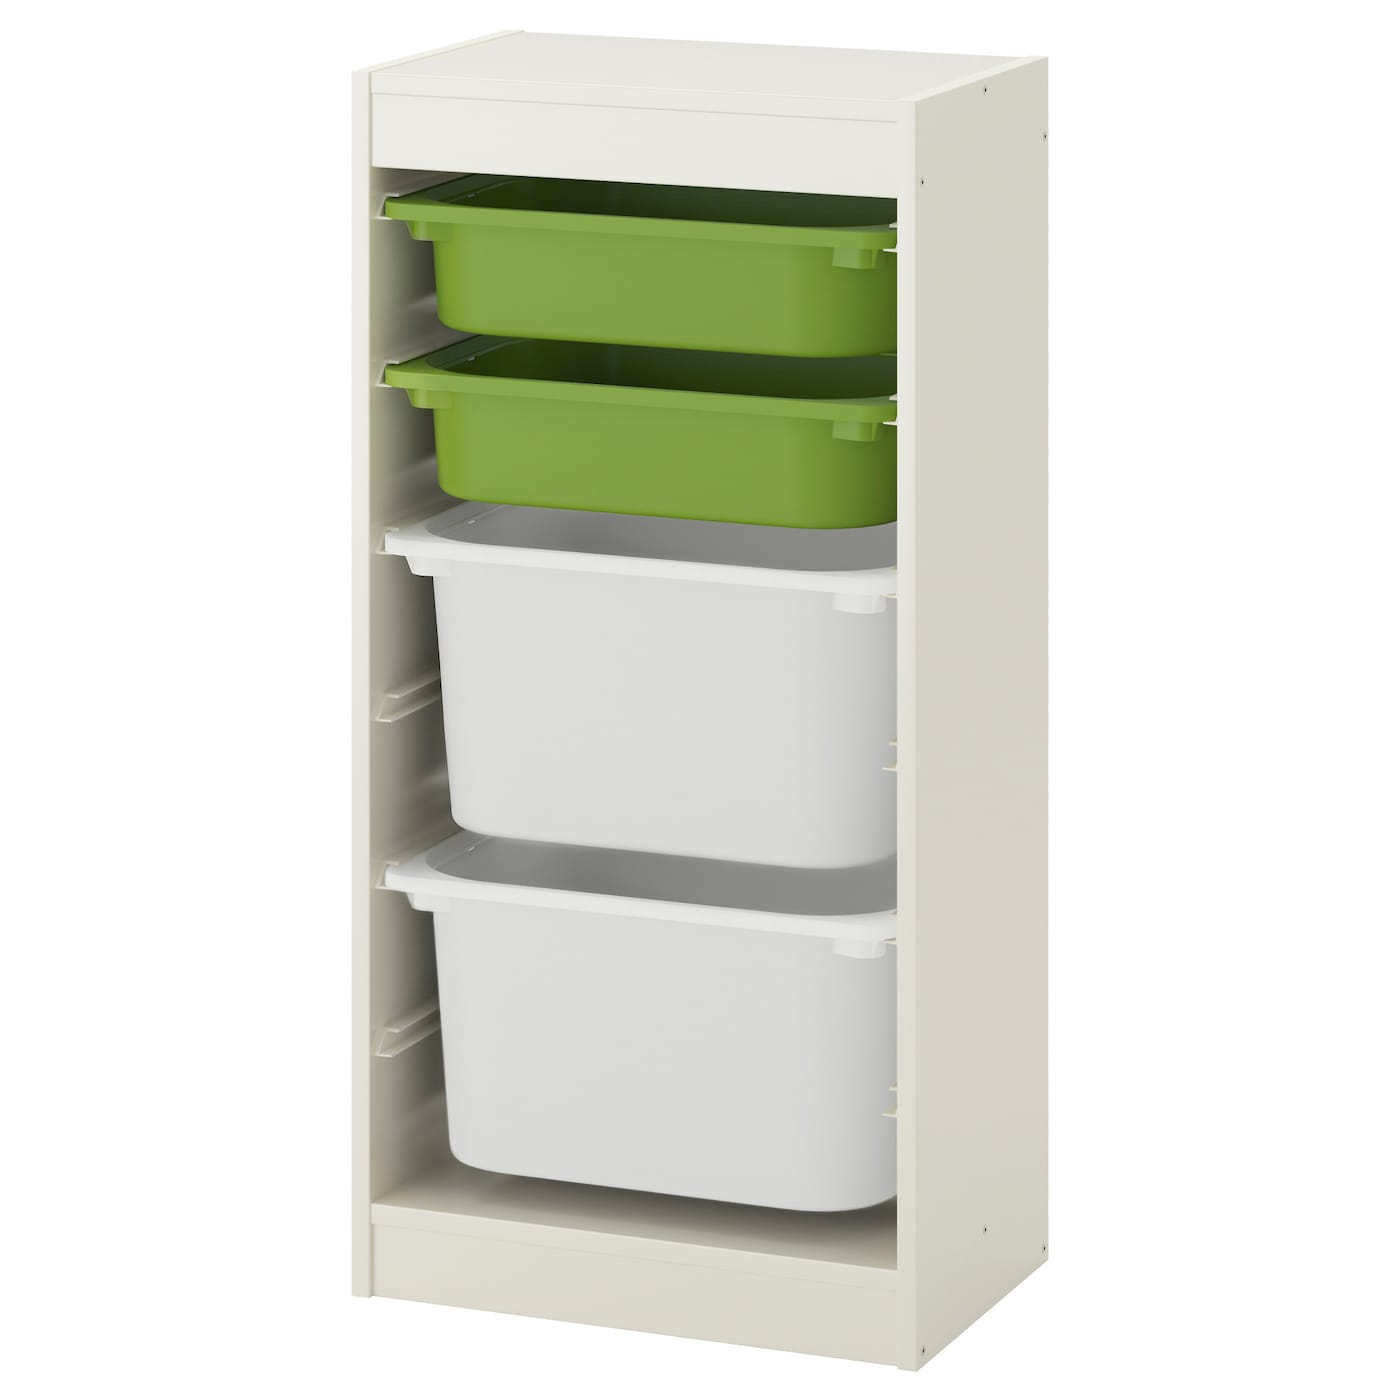 trofast storage combination with boxes white green white 46x30x94 cm ikea. Black Bedroom Furniture Sets. Home Design Ideas